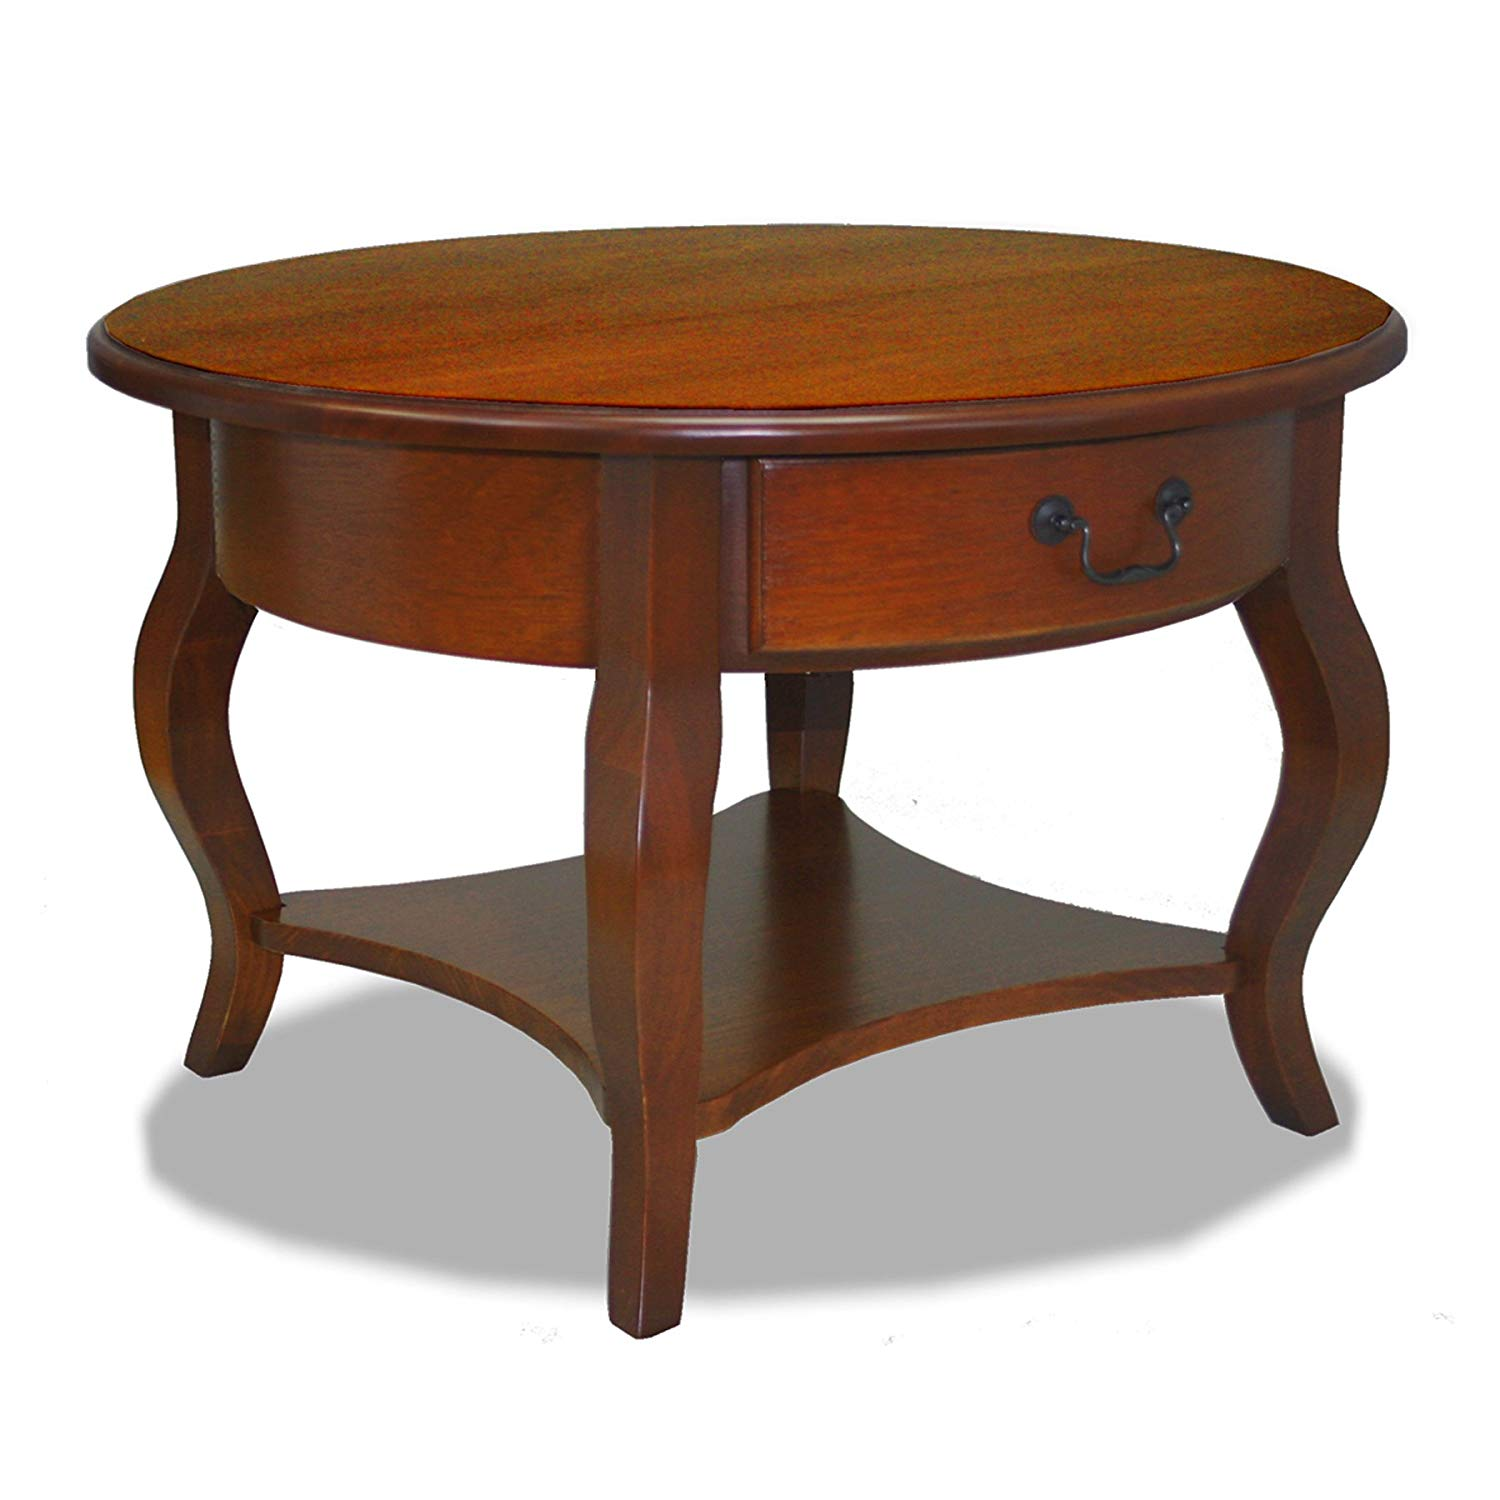 buffet furniture probably super great oval wood end table leick french countryside round storage coffee brown cherry kitchen dining fabric recliners tall bedside unit glass tables